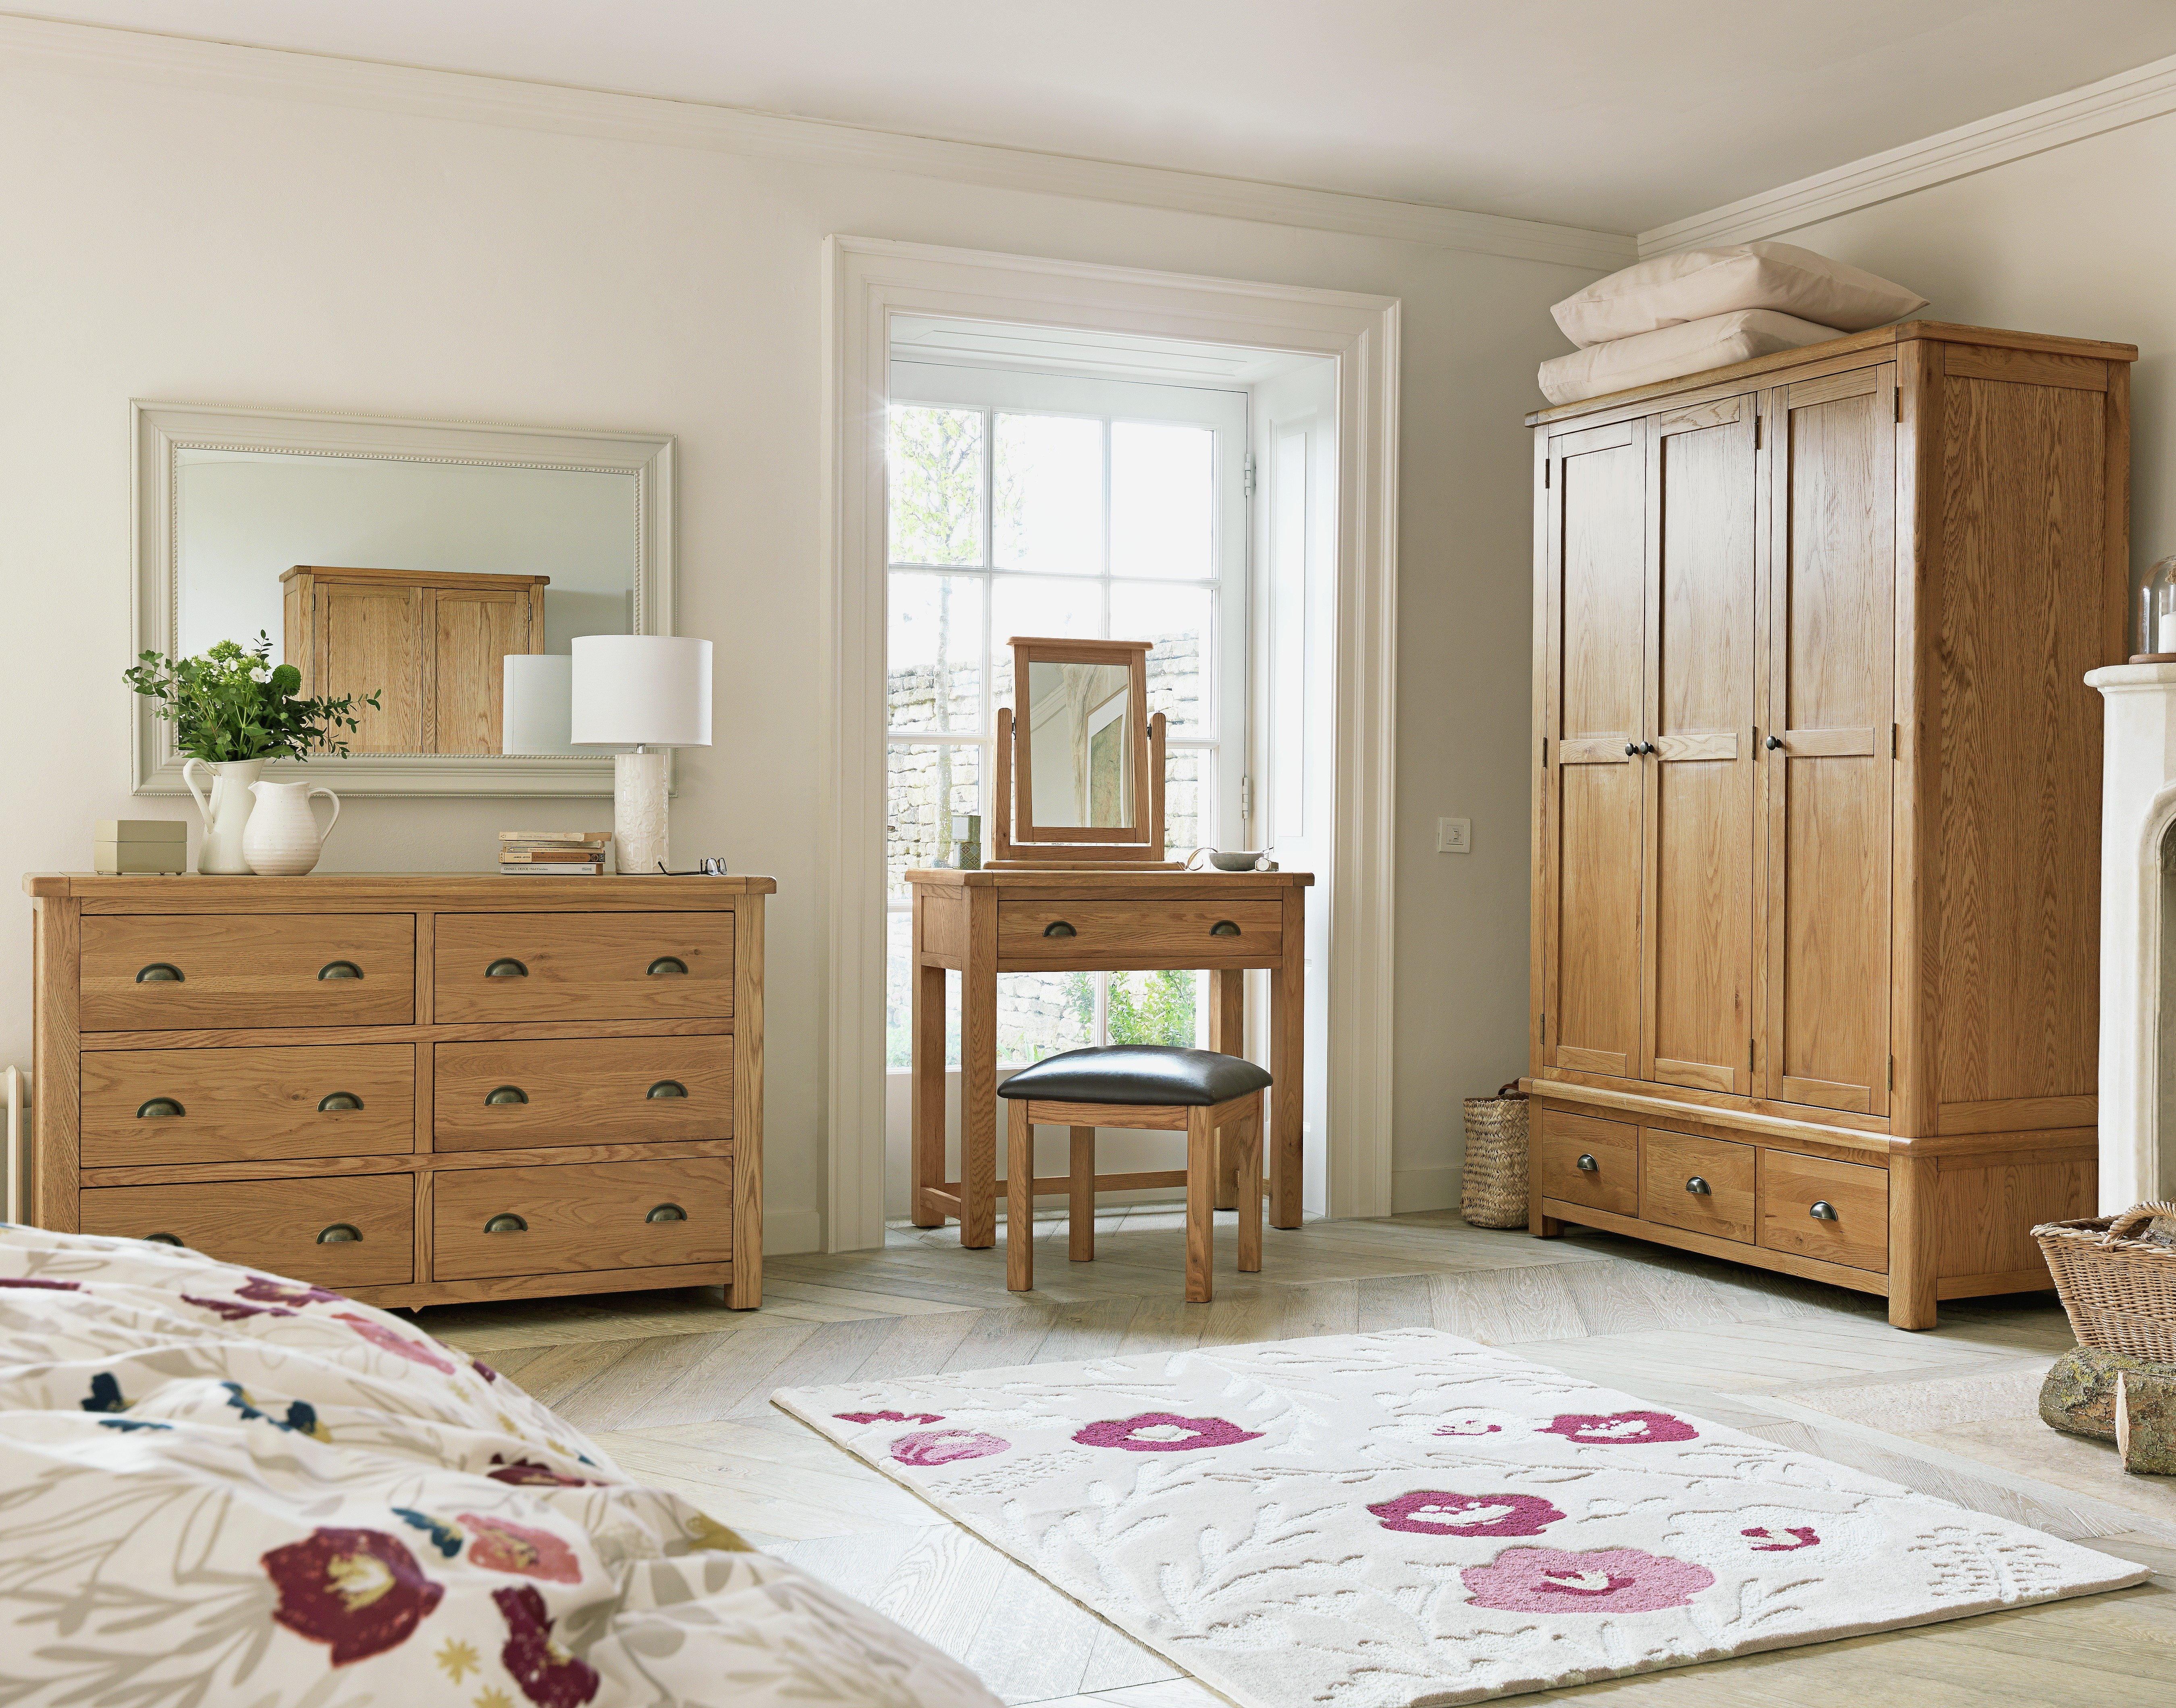 Argos Bedroom Furniture Fair Buy Heart Of House Kent 1Drw Dressing Table Stool Mirror  Oak . Design Inspiration